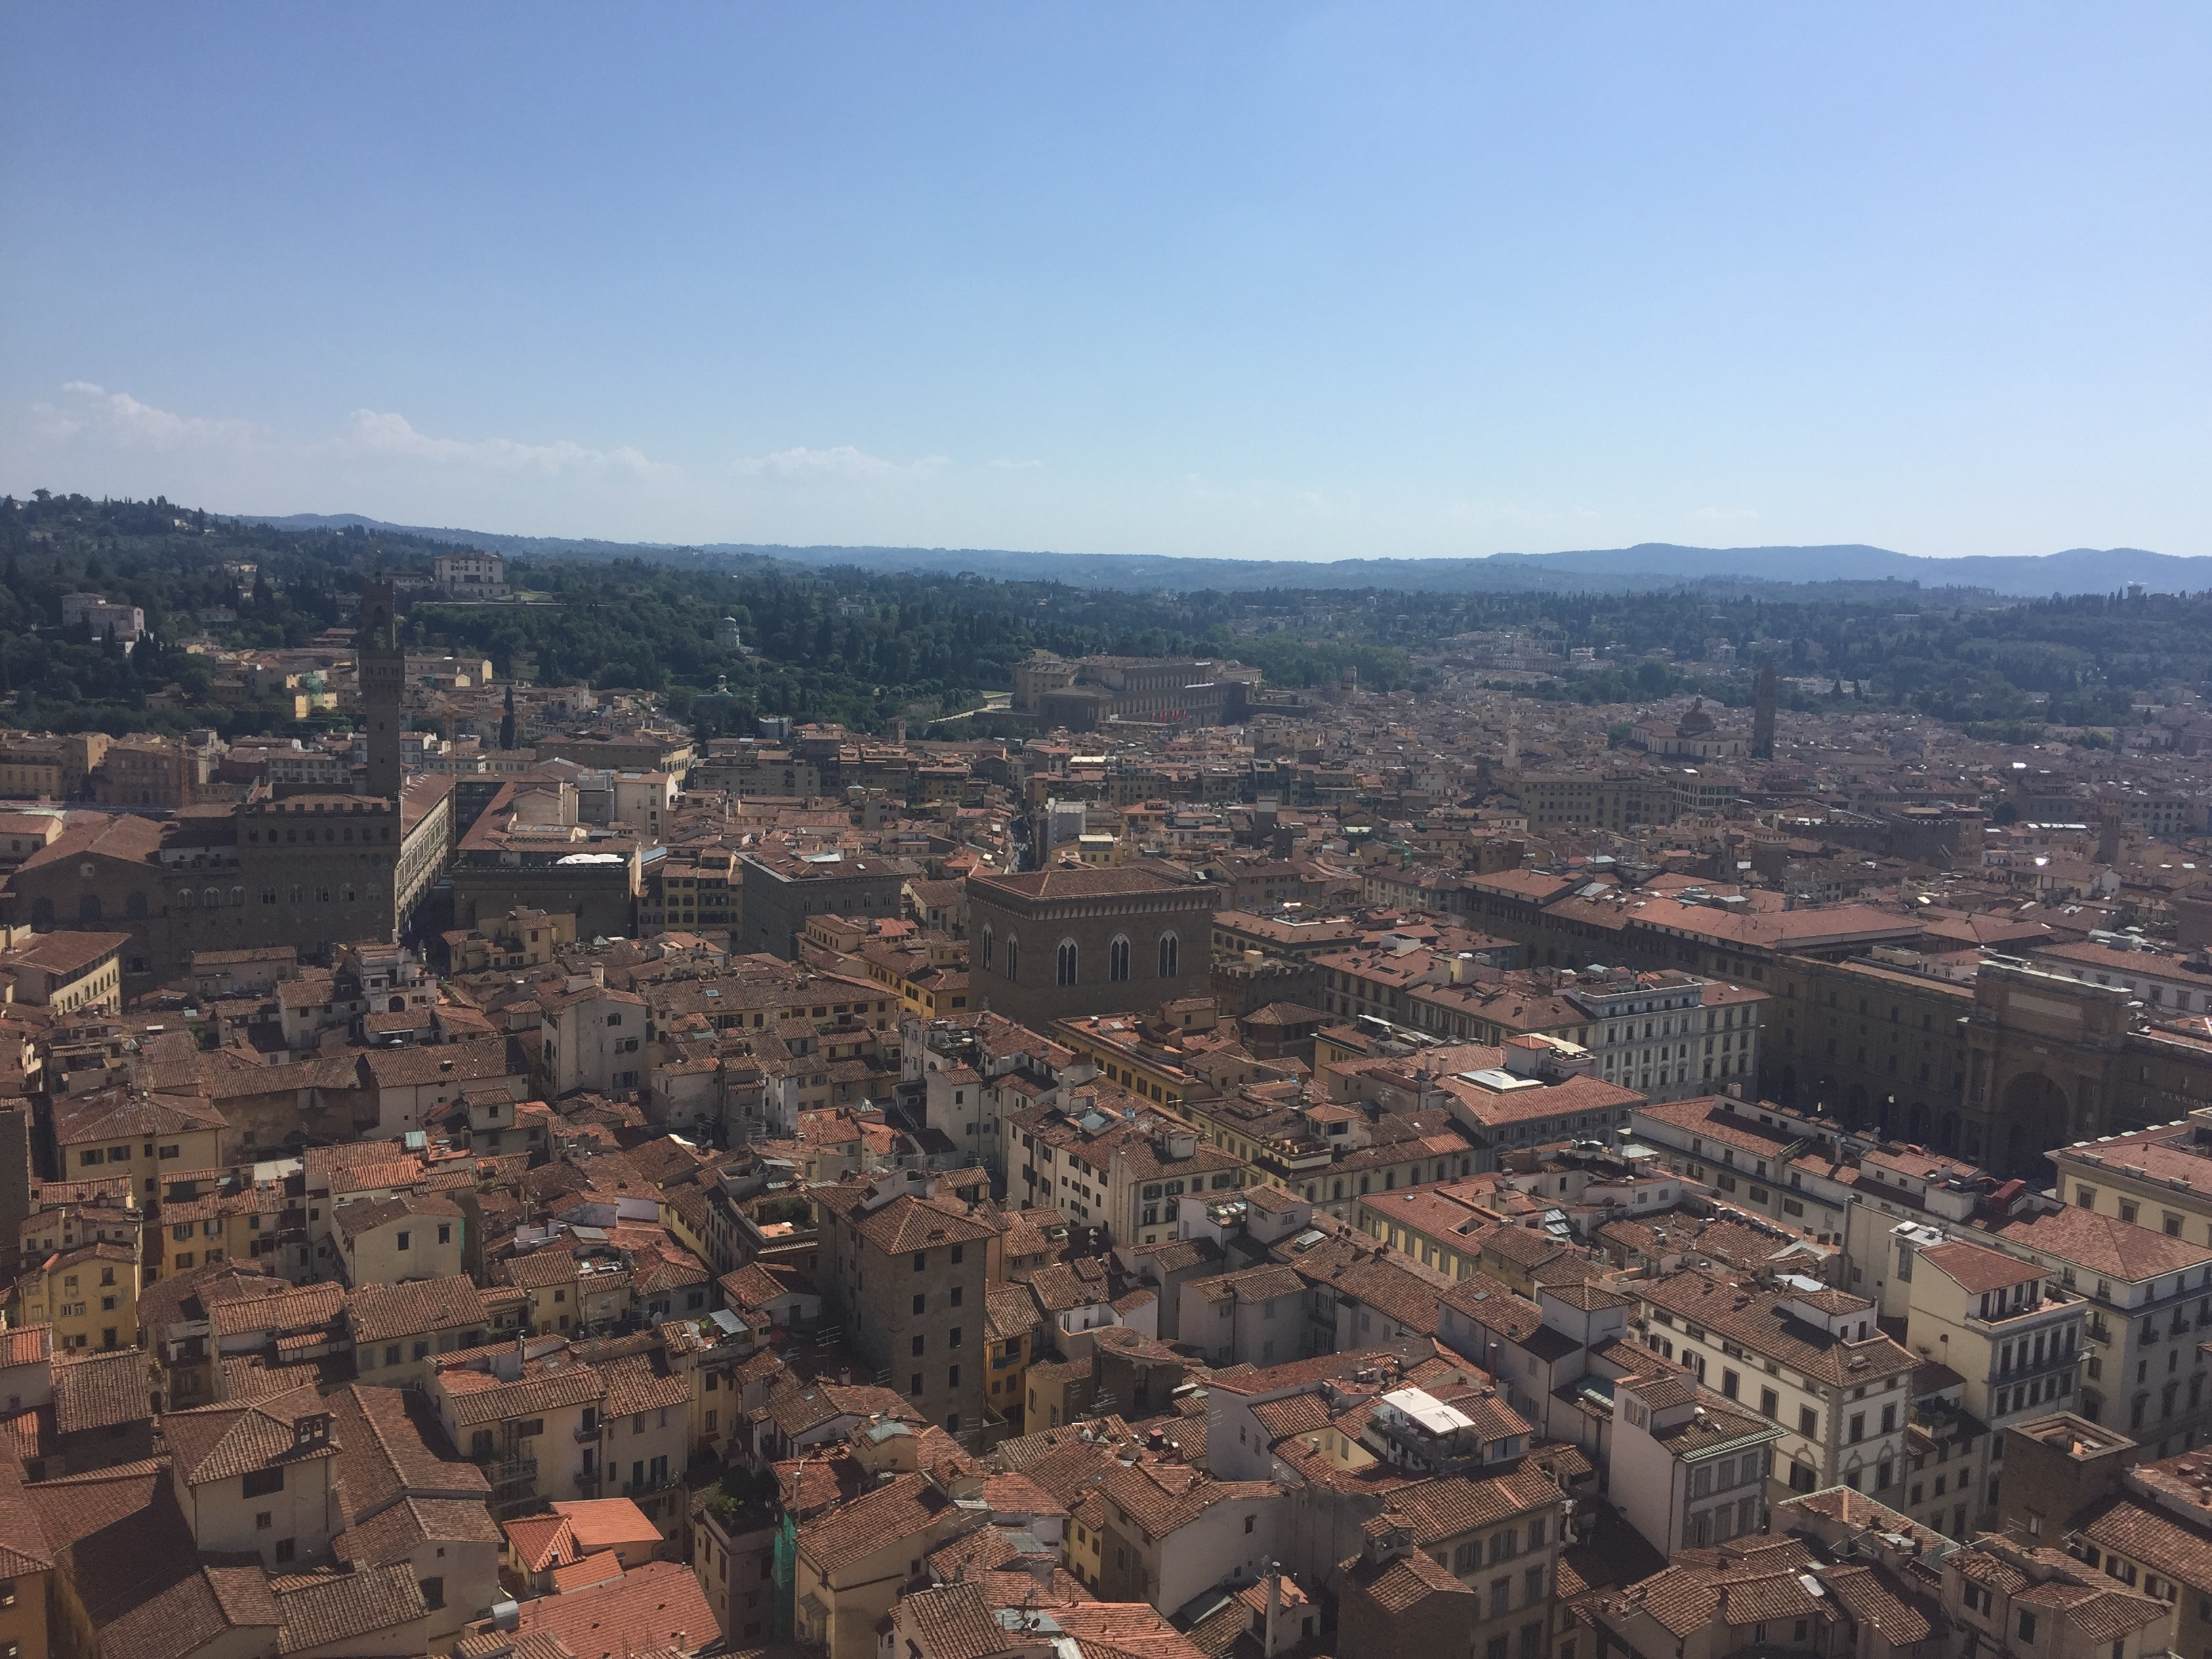 View from the top of Il Duomo